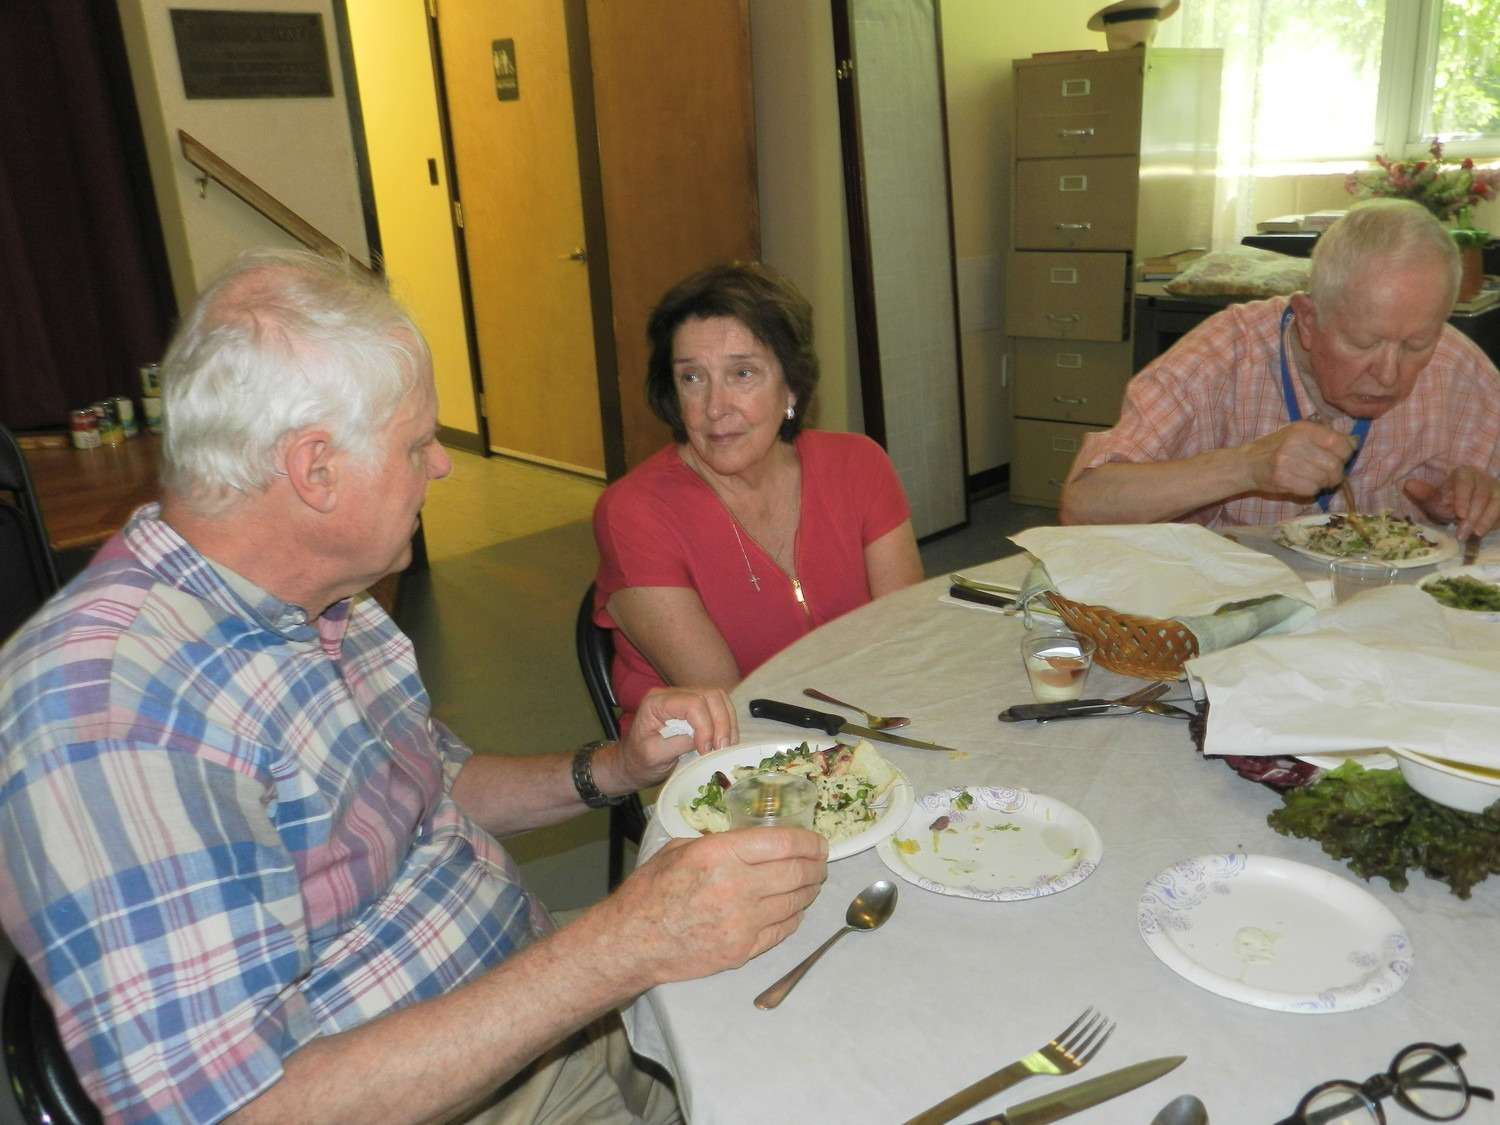 Despite retirement, Janette Heurtley joined lunching seniors Nigel Hawkins, left, and Roy Gustafson at their table to make sure the food and the service were up to par.